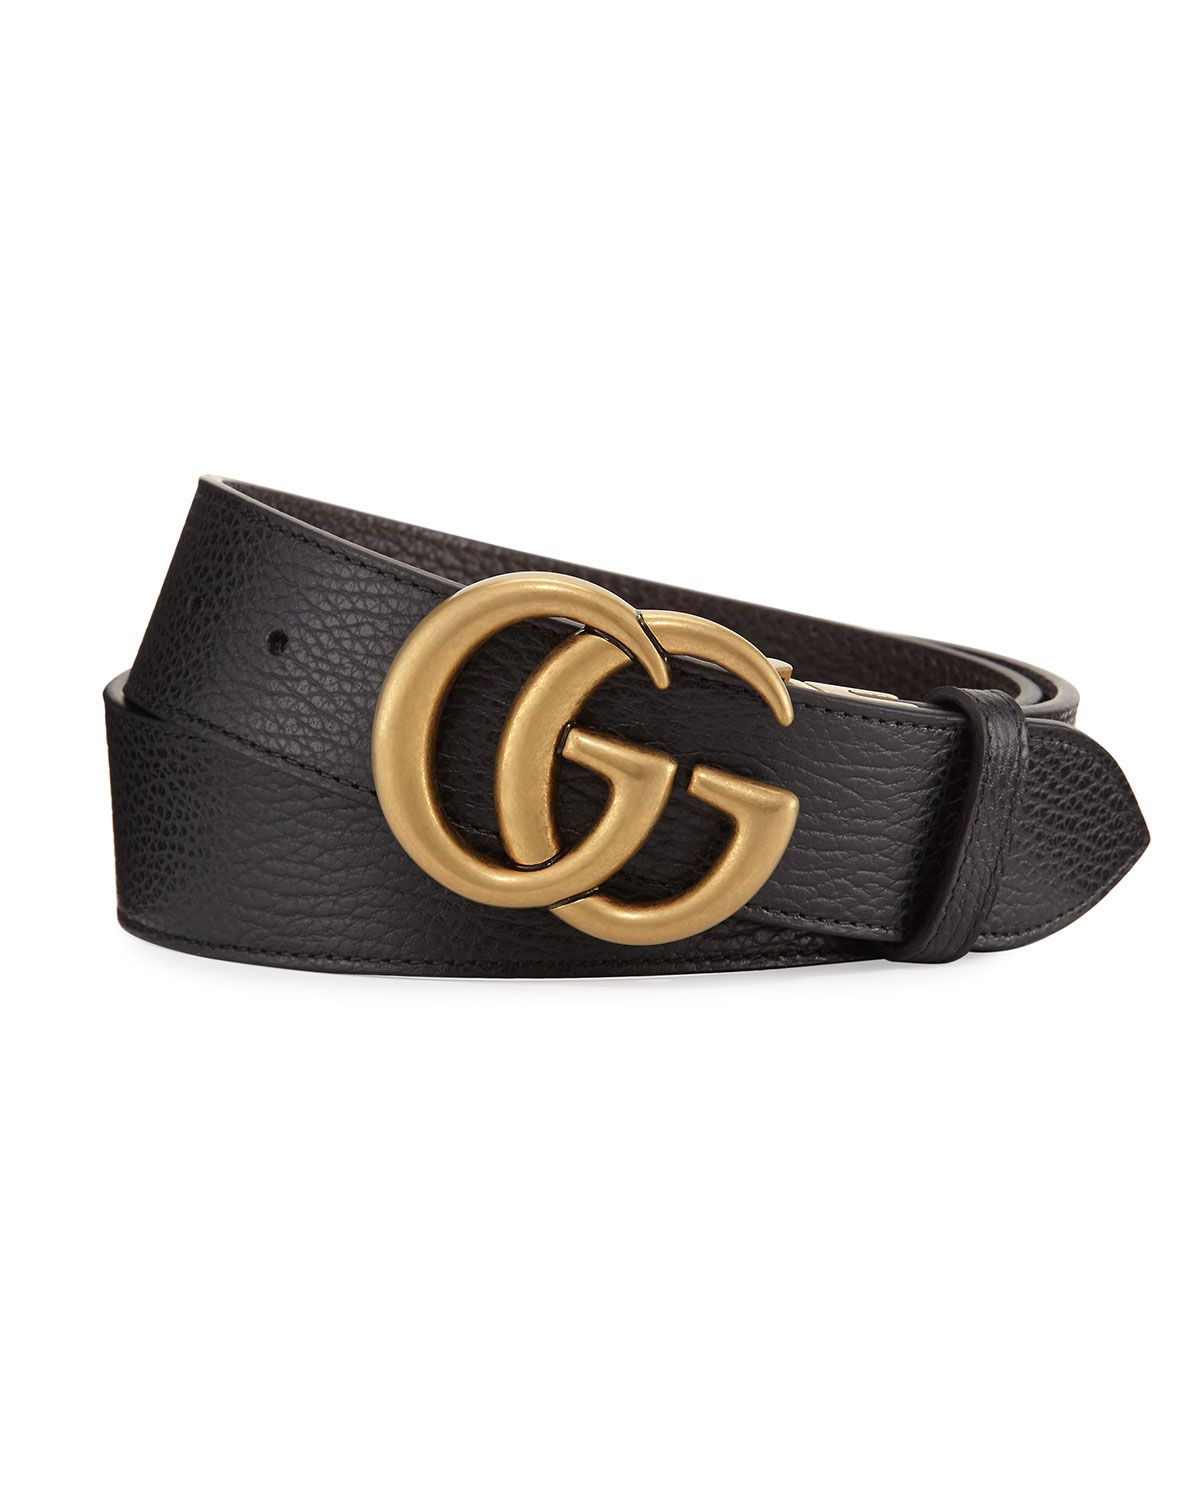 c8ae96624 GUCCI REVERSIBLE LEATHER DOUBLE G BELT. #gucci | Gucci in 2019 ...